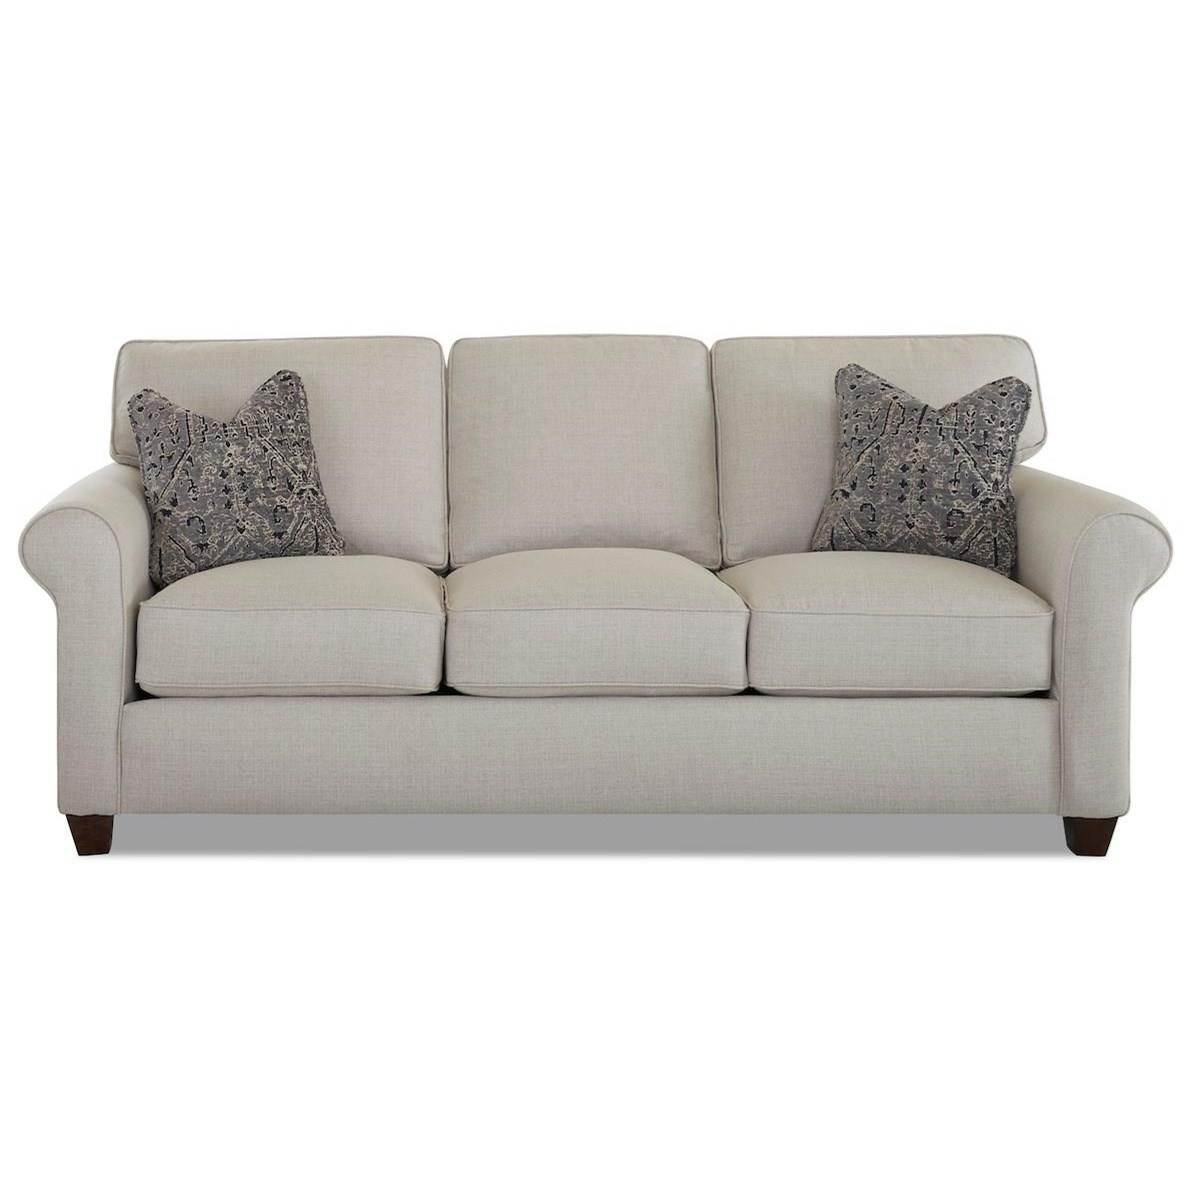 Lillington Distinctions  Extra Large Queen Air Coil Sleeper Sofa by Klaussner at Johnny Janosik